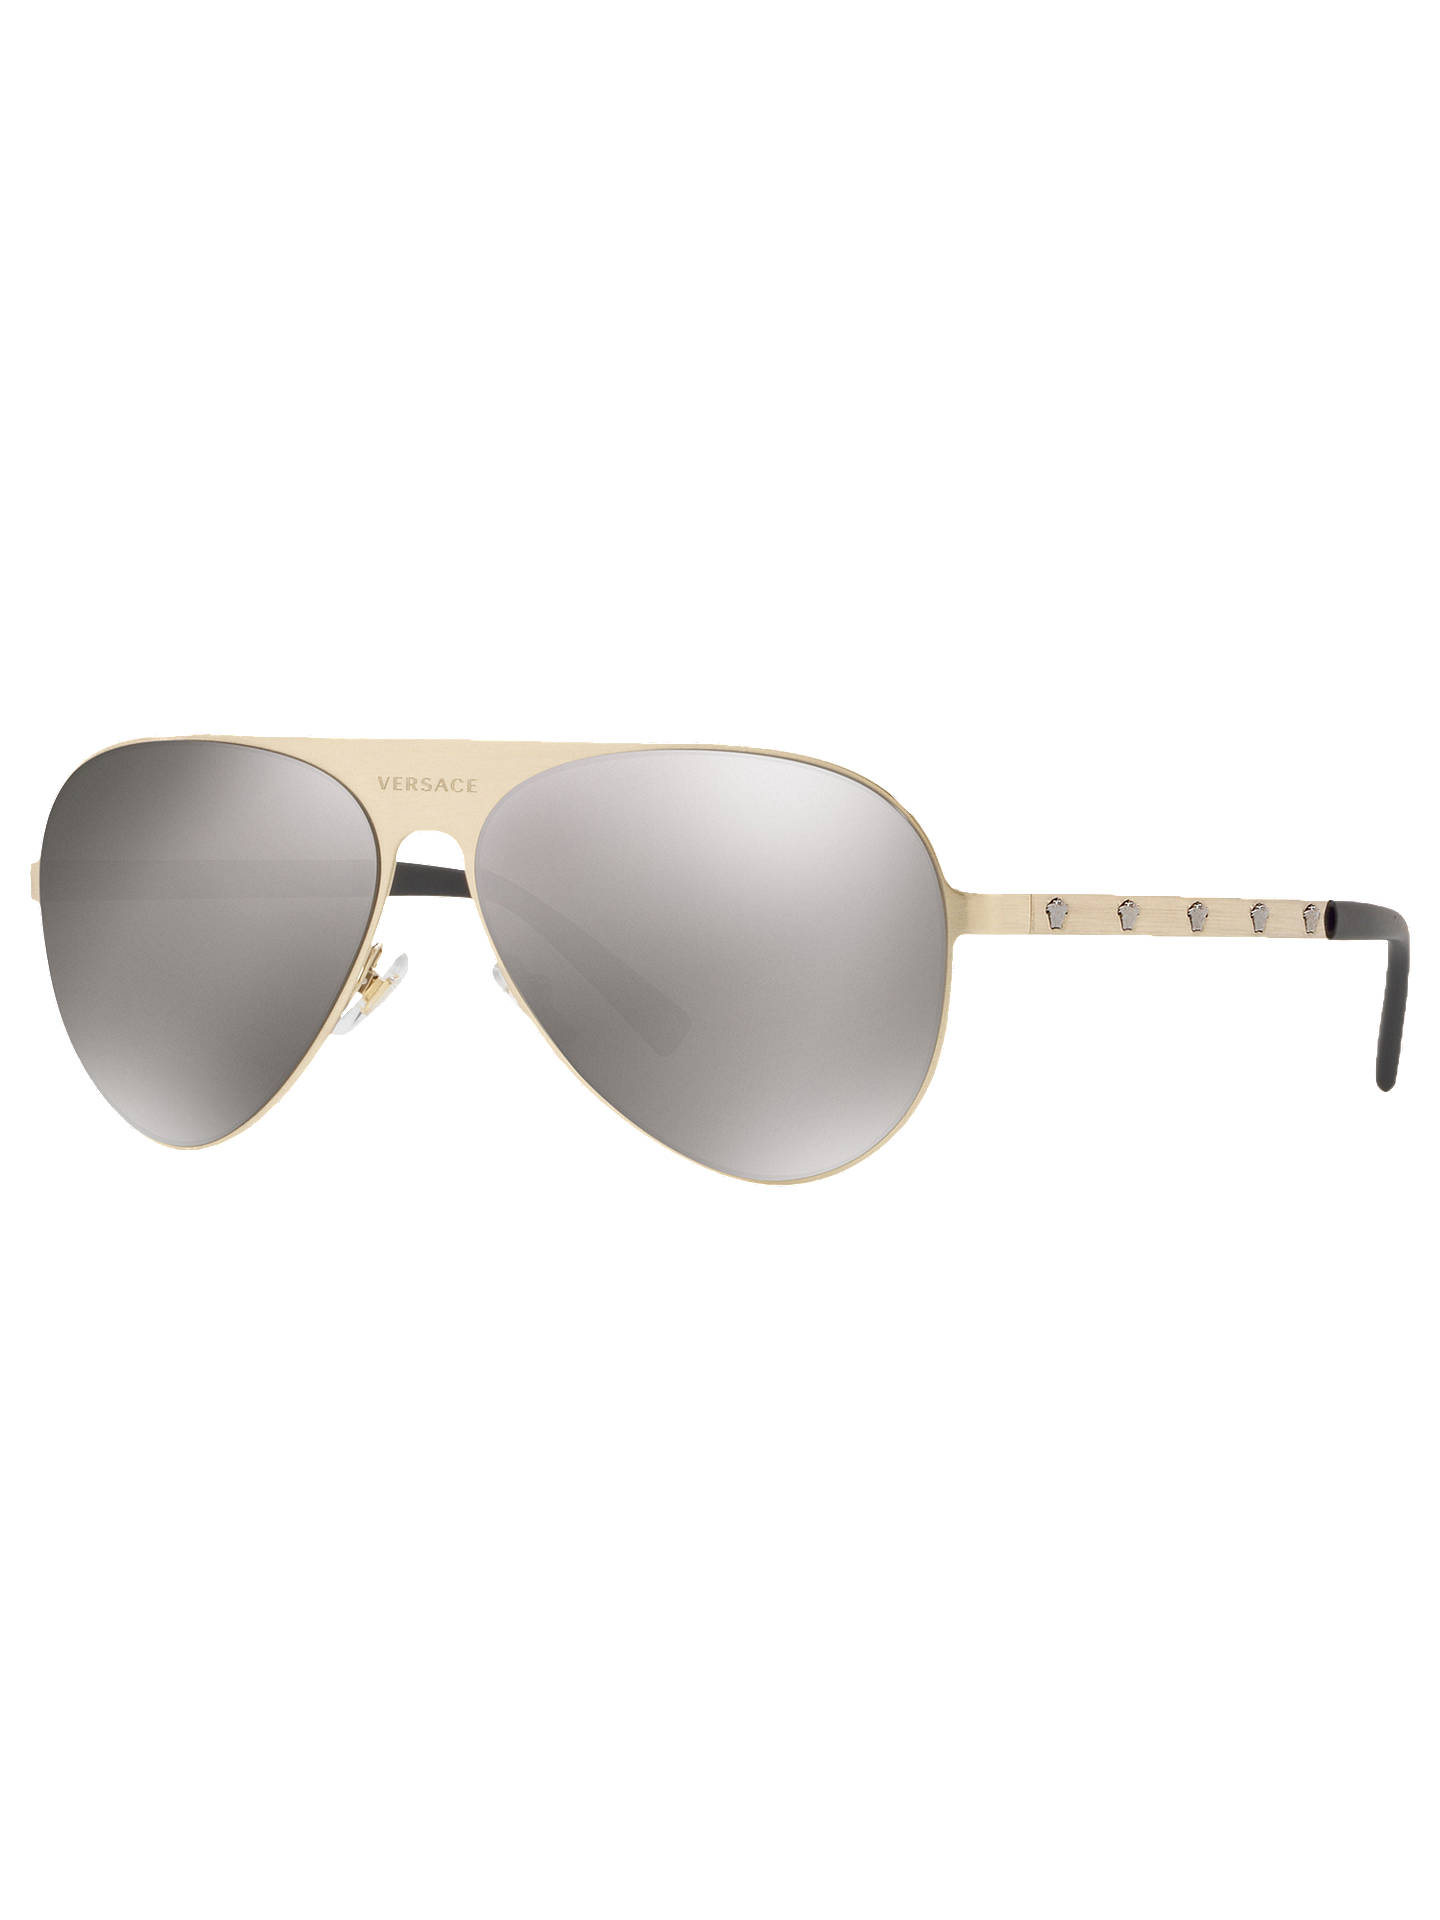 ddb685b3885f Buy Versace VE2189 Unisex Polarised Embellished Aviator Sunglasses, Pale  Gold/Light Brown Online at ...